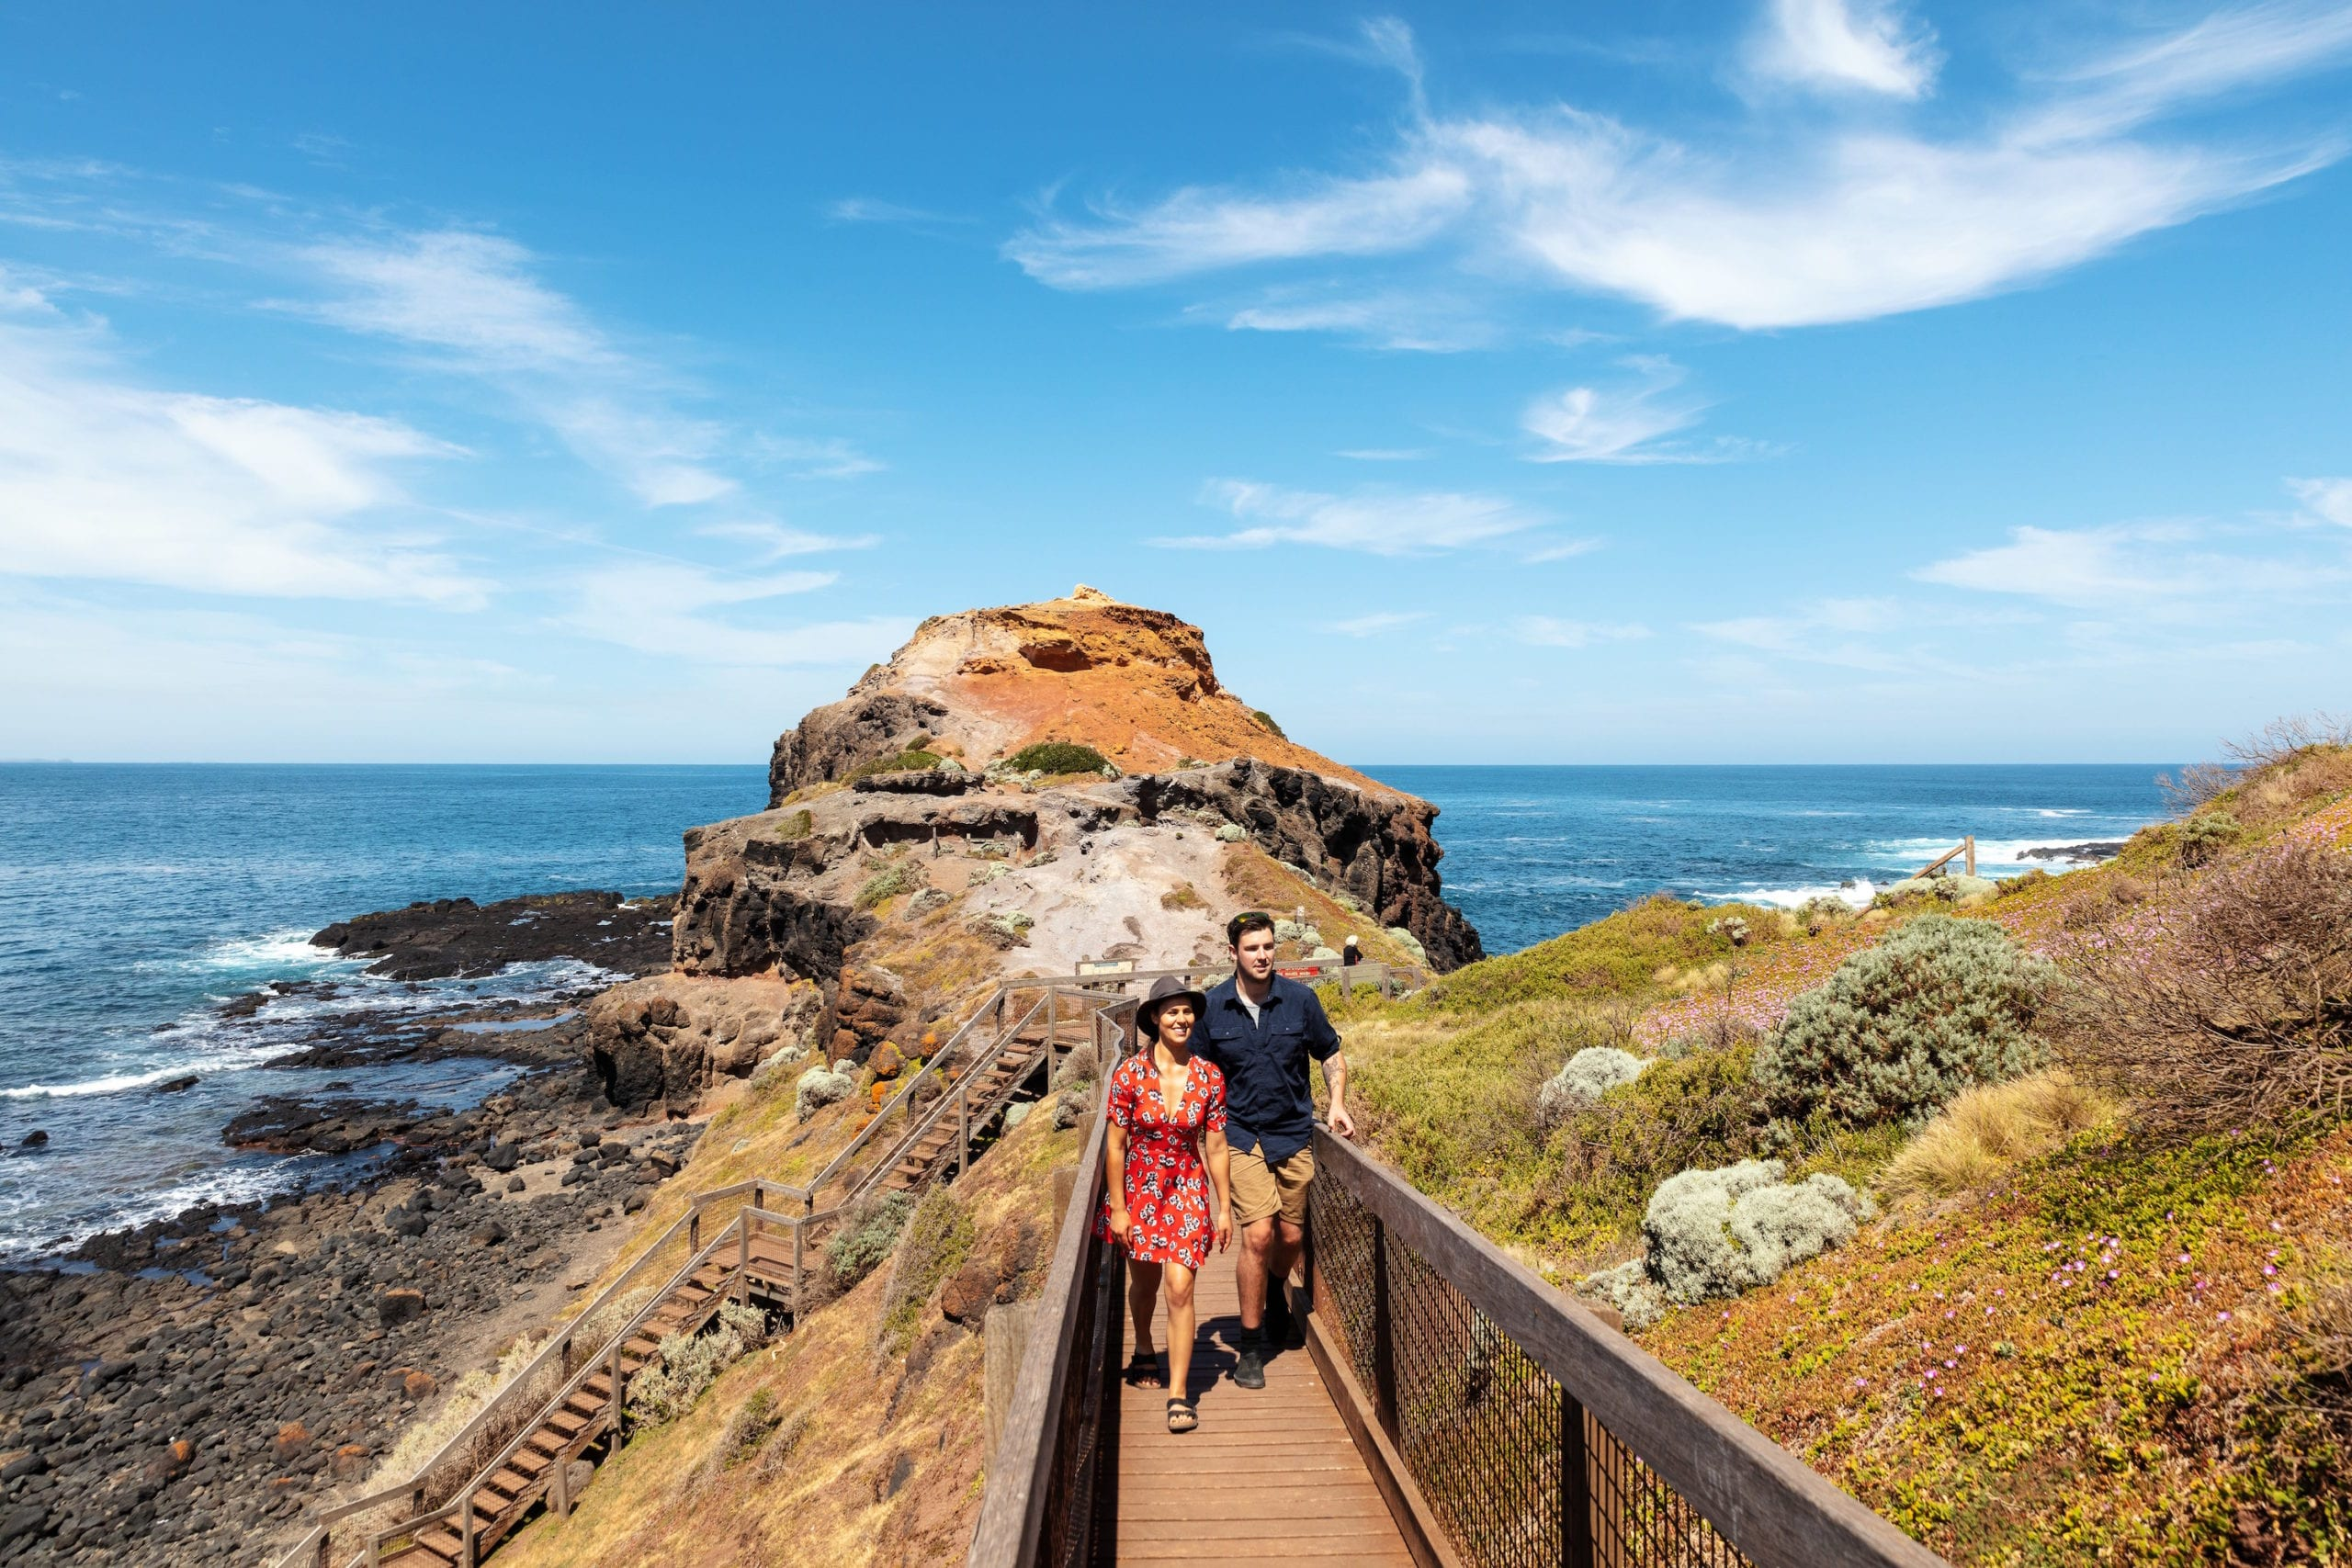 Cape Schanck, Mornington Peninsula National Park